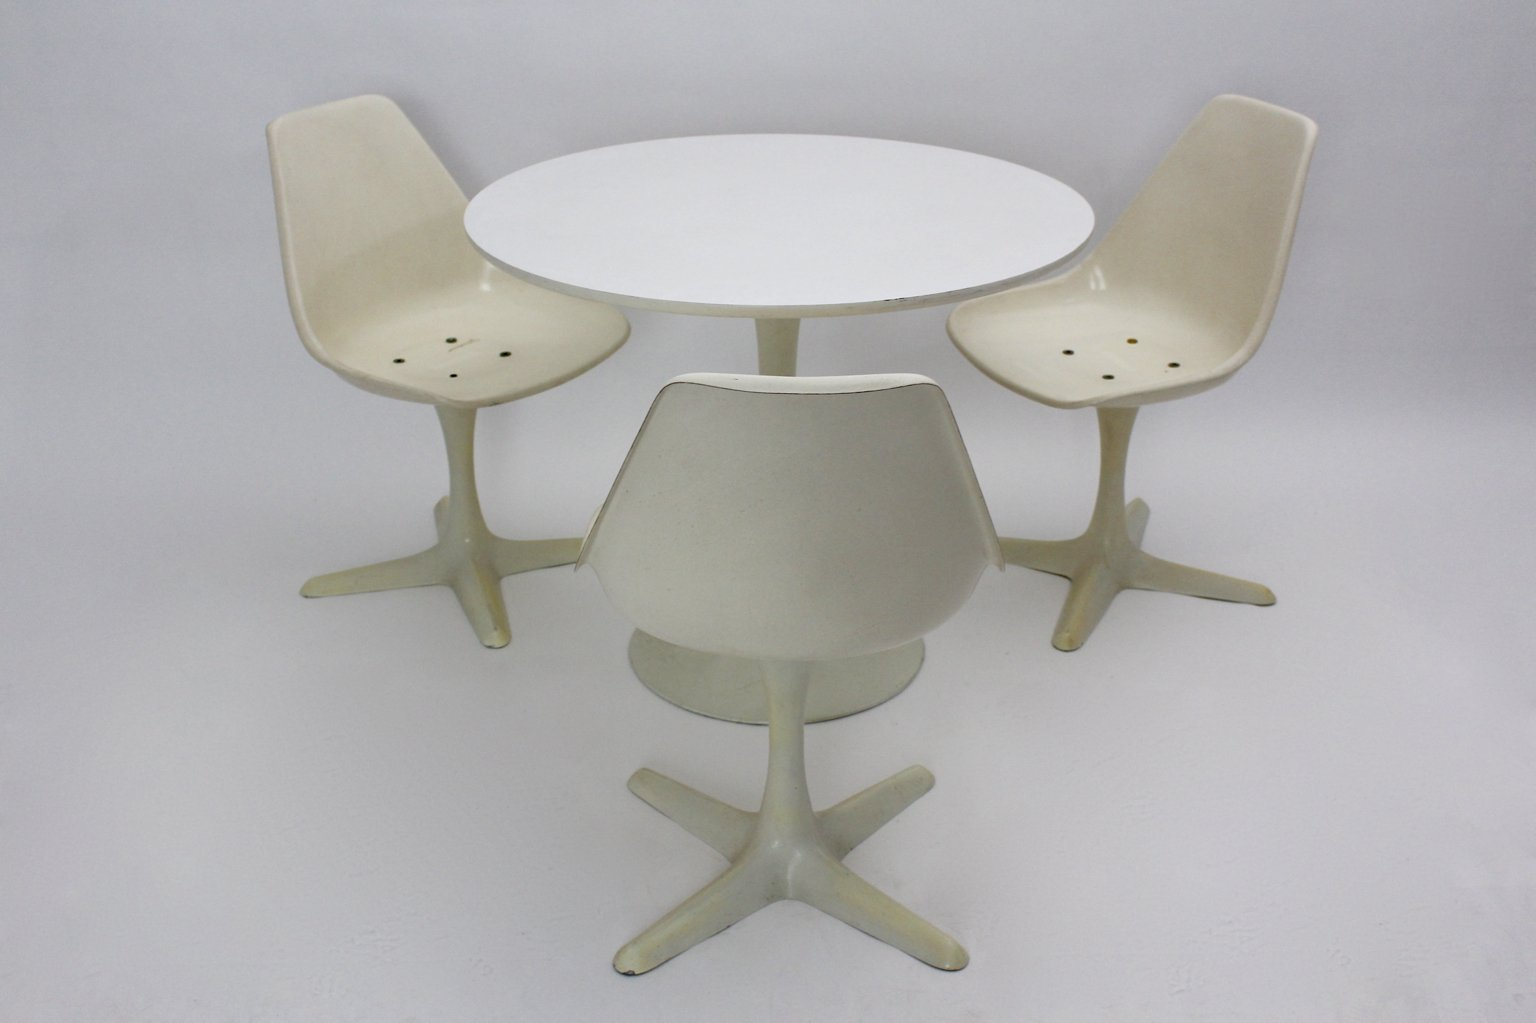 British Table And Chairs Dining Set By Maurice Burke For Arkana, 1960s, Set  Of 4